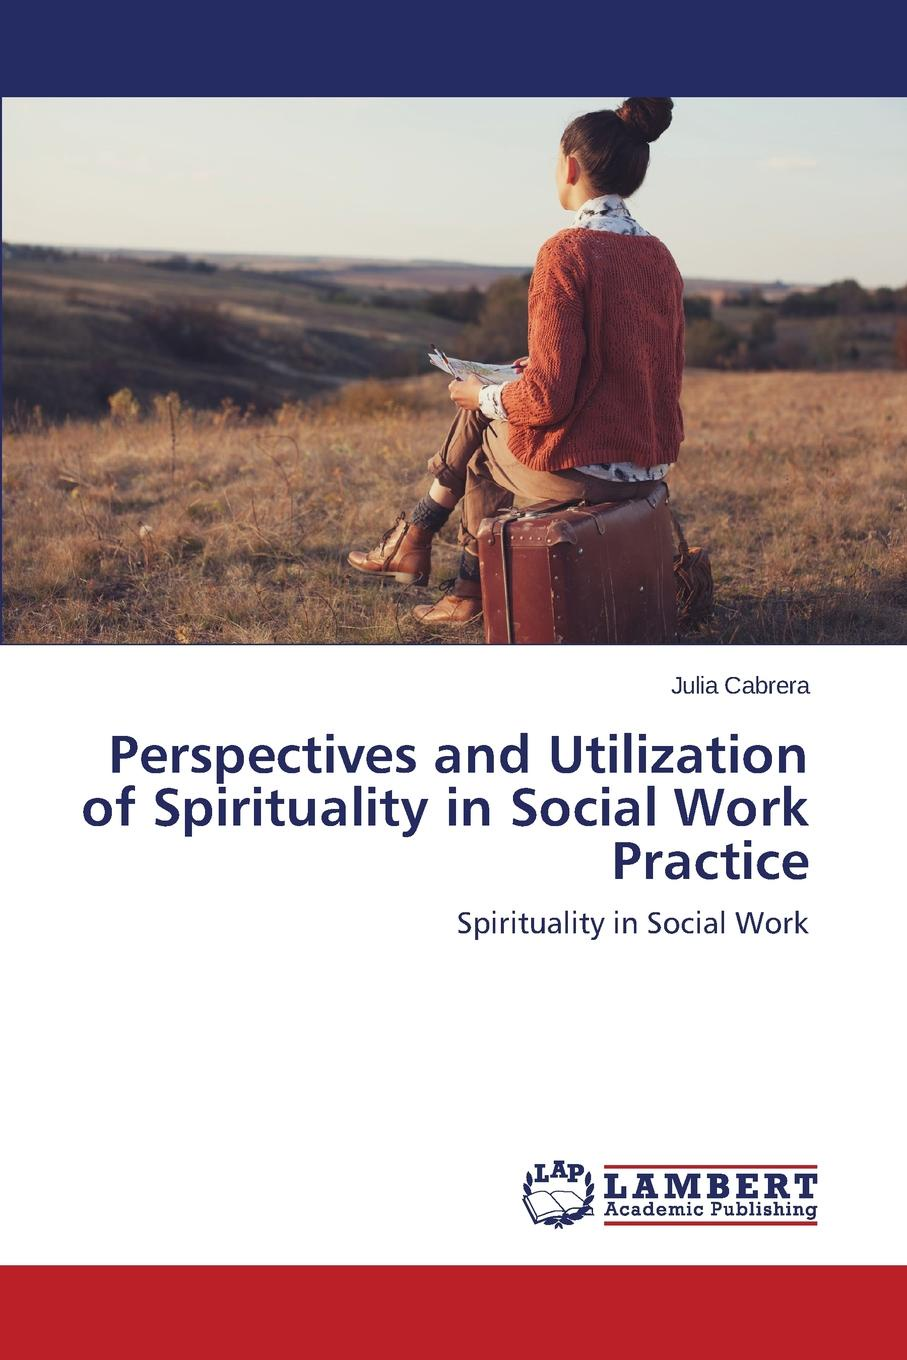 Cabrera Julia Perspectives and Utilization of Spirituality in Social Work Practice kim metz careers in mental health opportunities in psychology counseling and social work